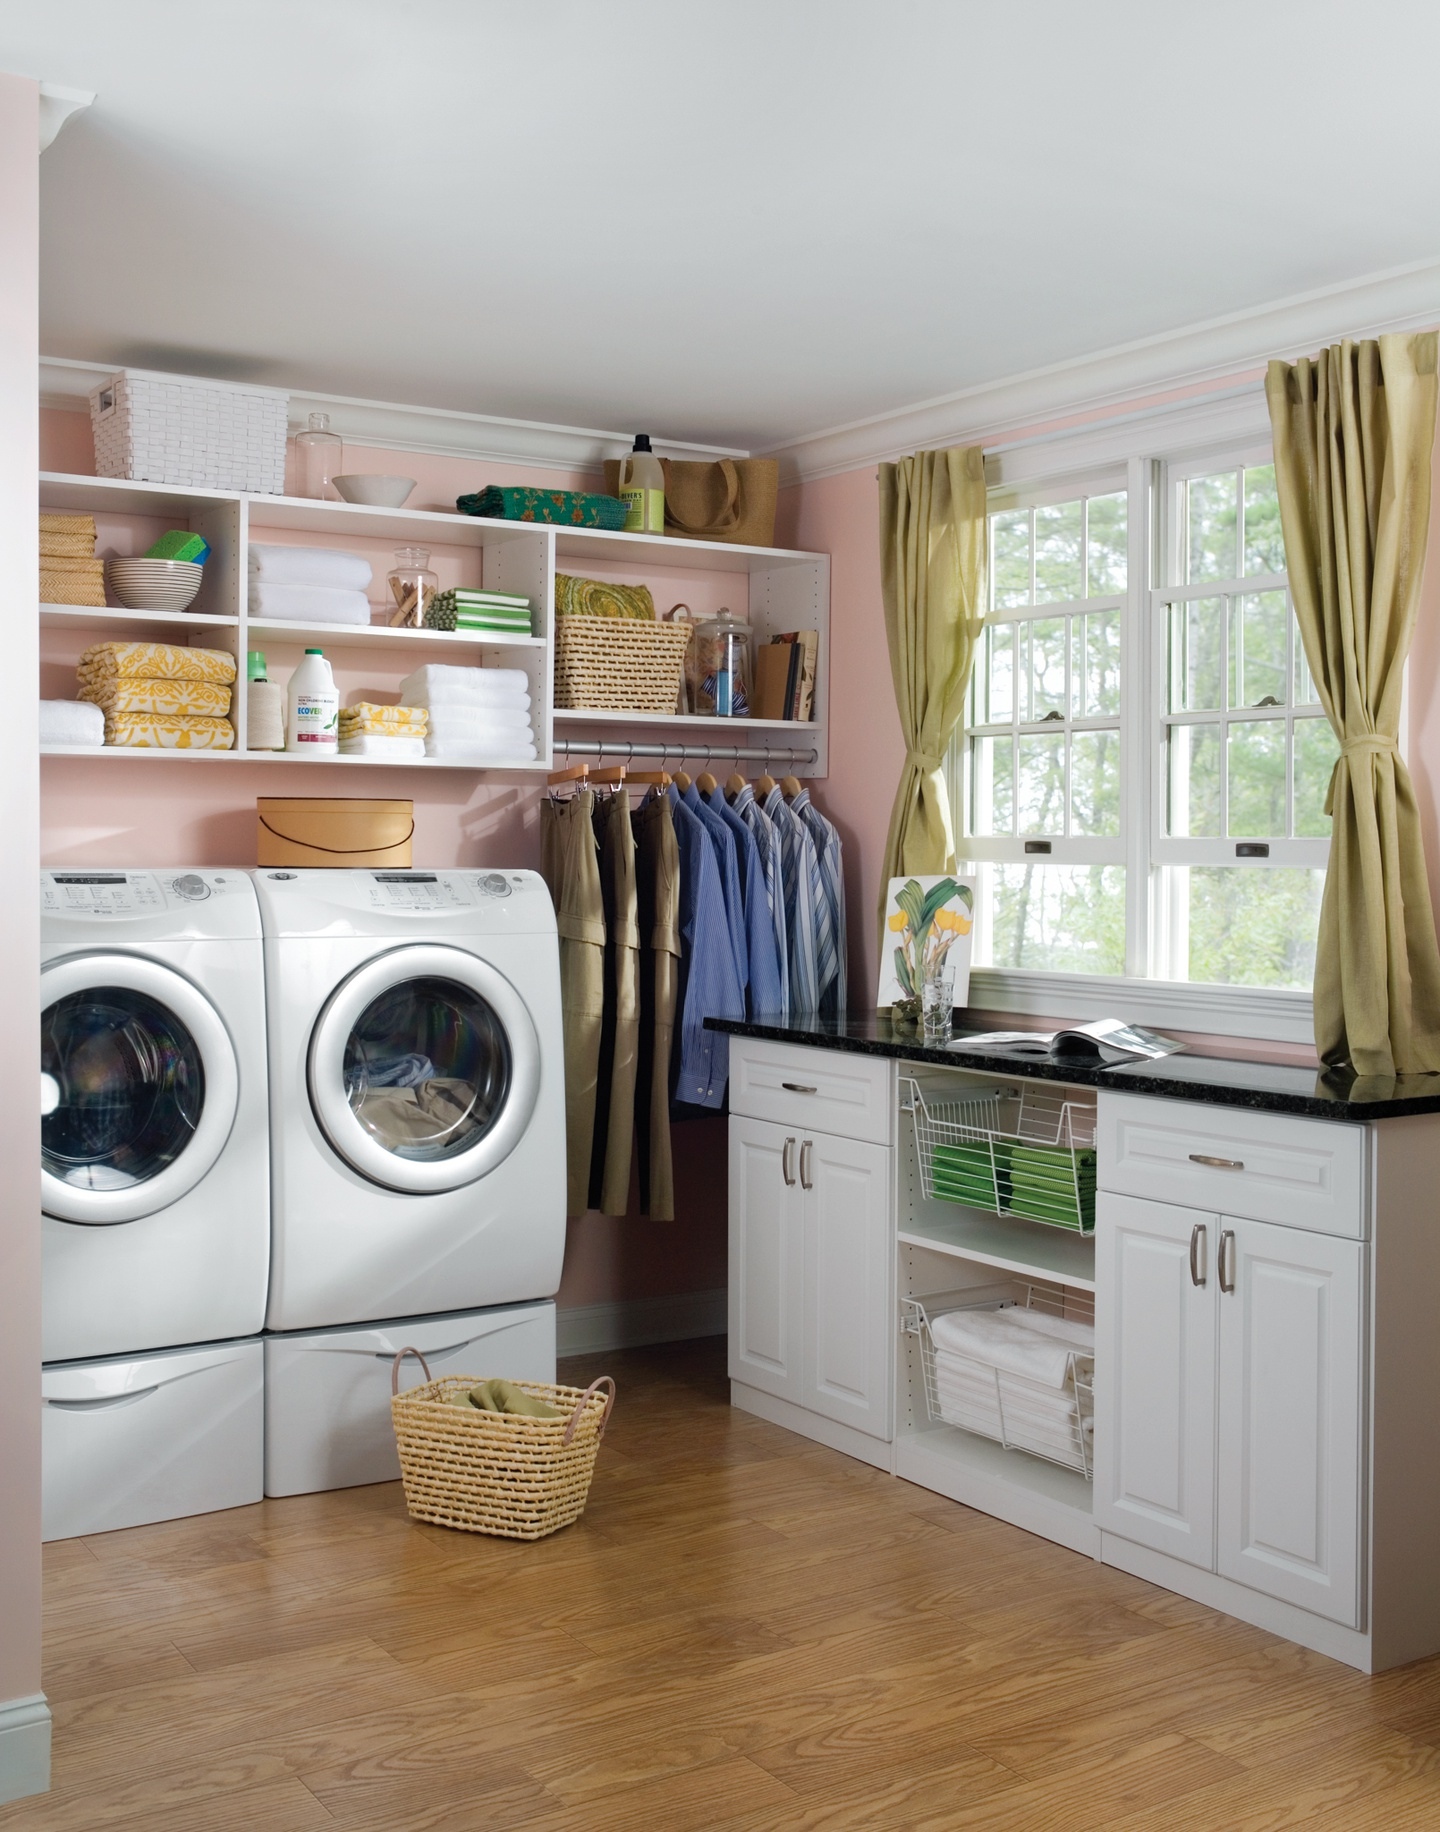 Design a Laundry Room EasyClosets